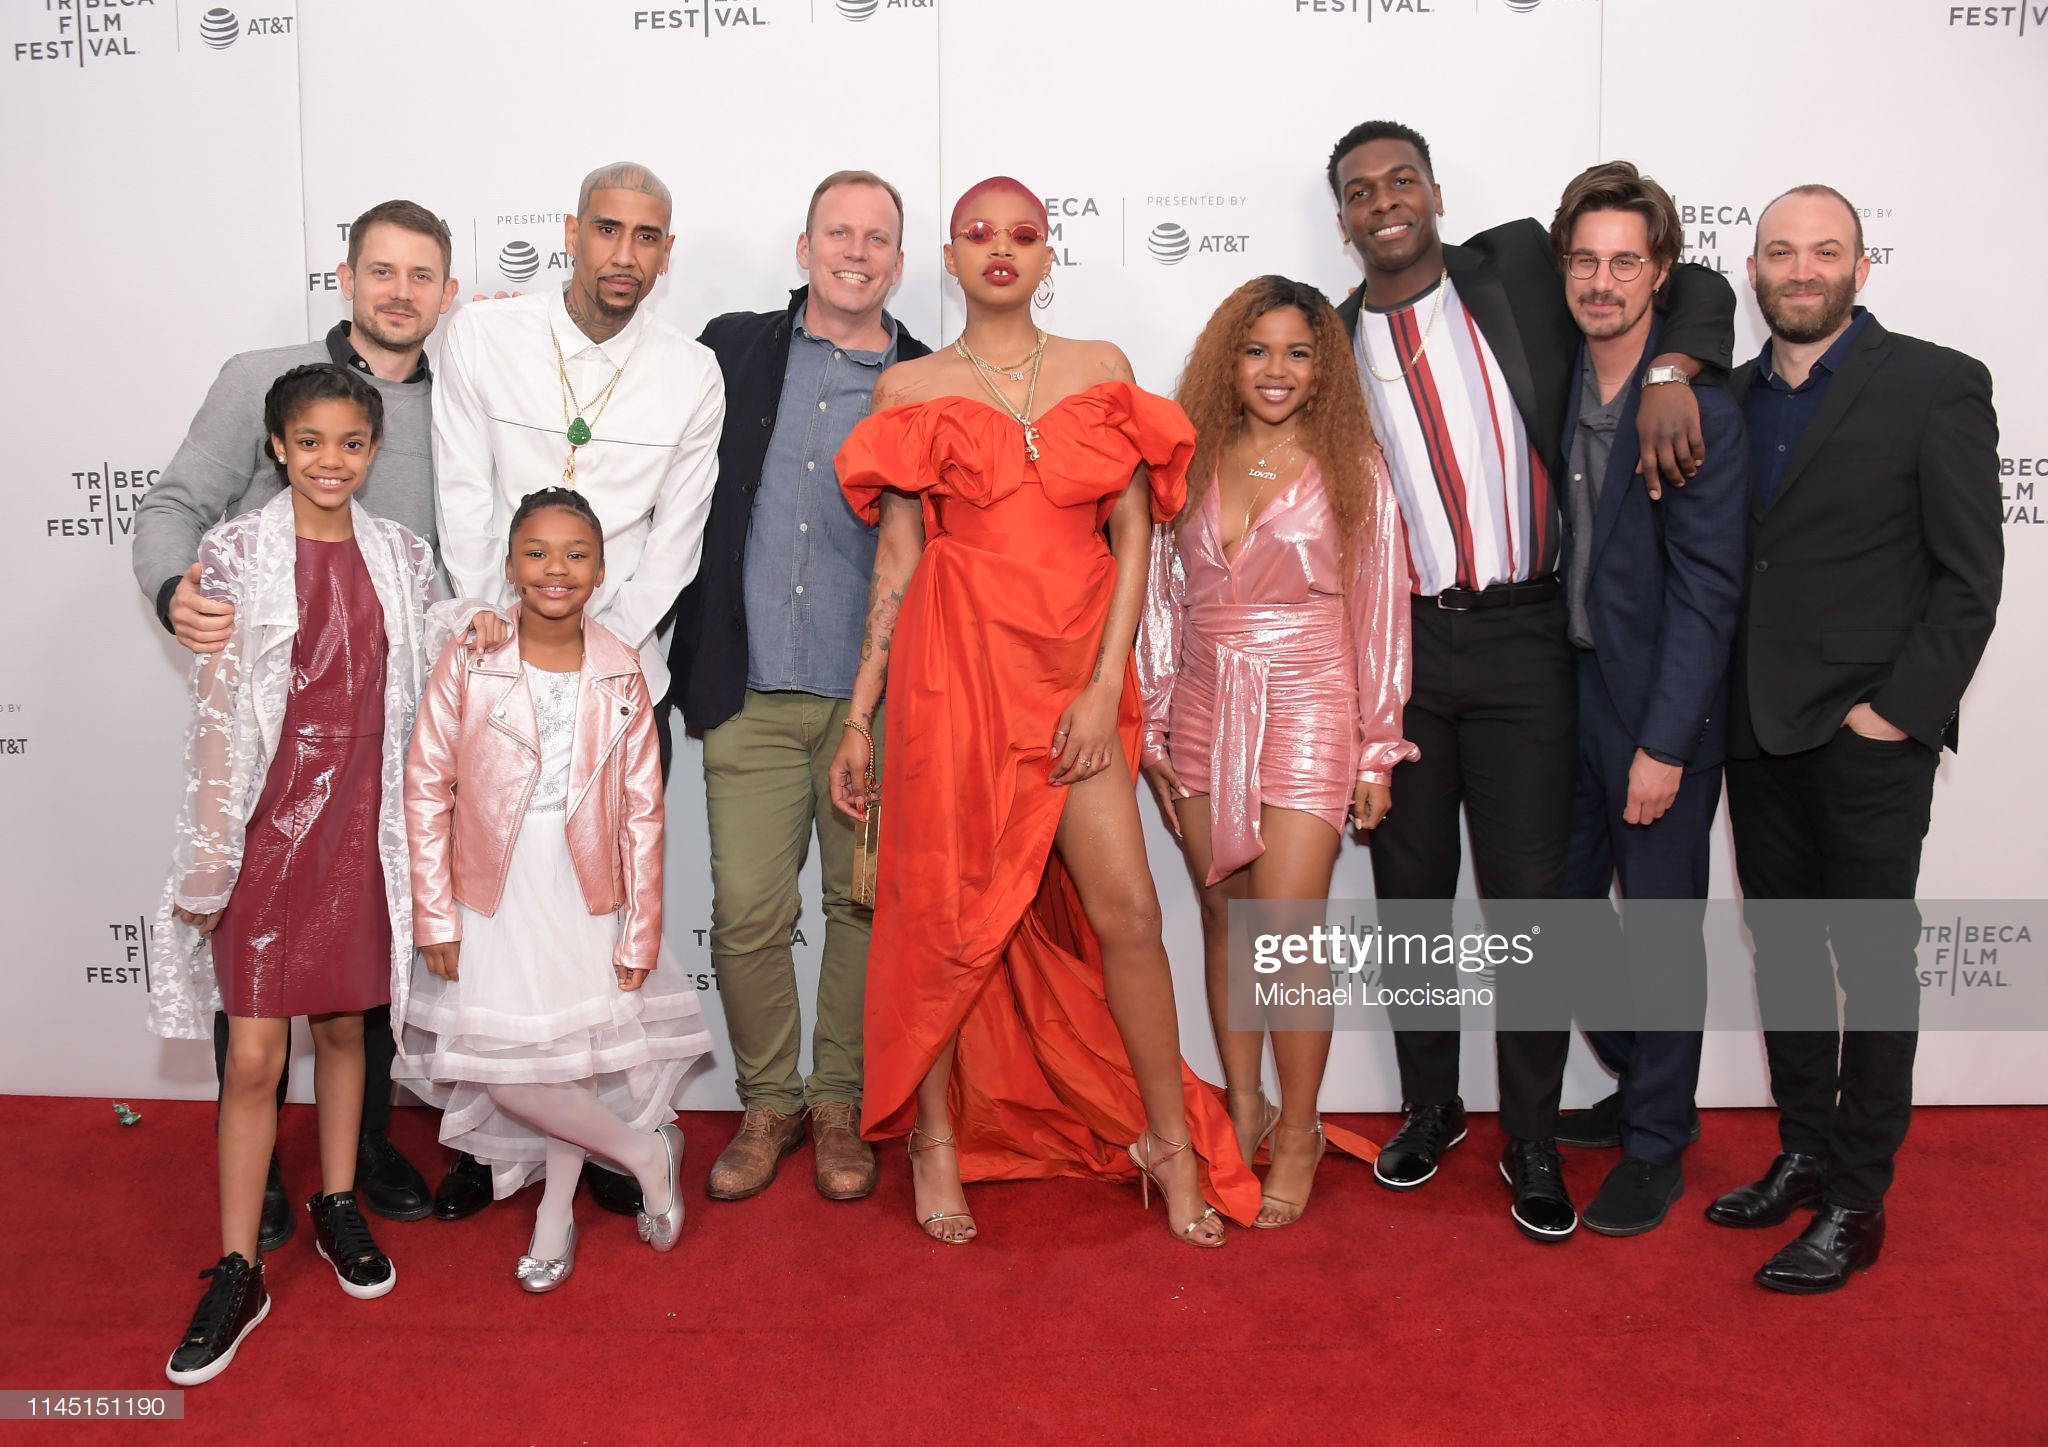 Nathan Halpern attends the Tribeca Film Festival premiere of GOLDIE